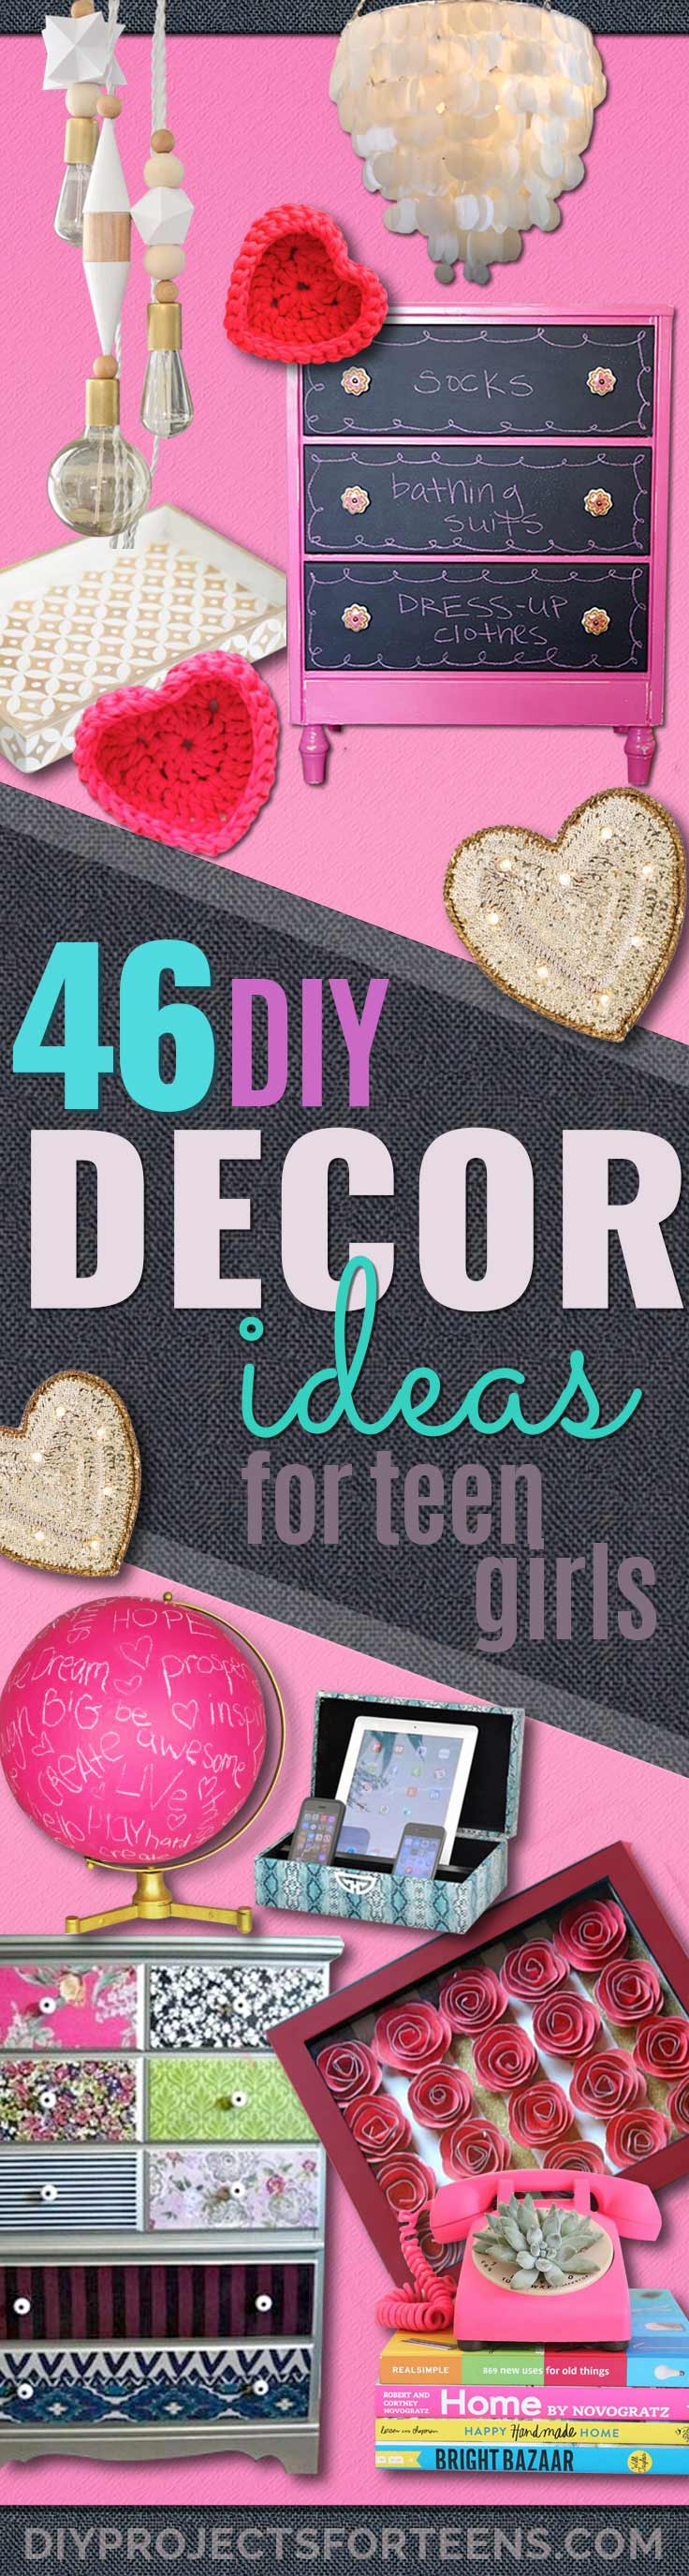 Bedroom ideas for girls pink - Diy Teen Room Decor Ideas For Girls Fun Crafts And Decor For Tweens Cool